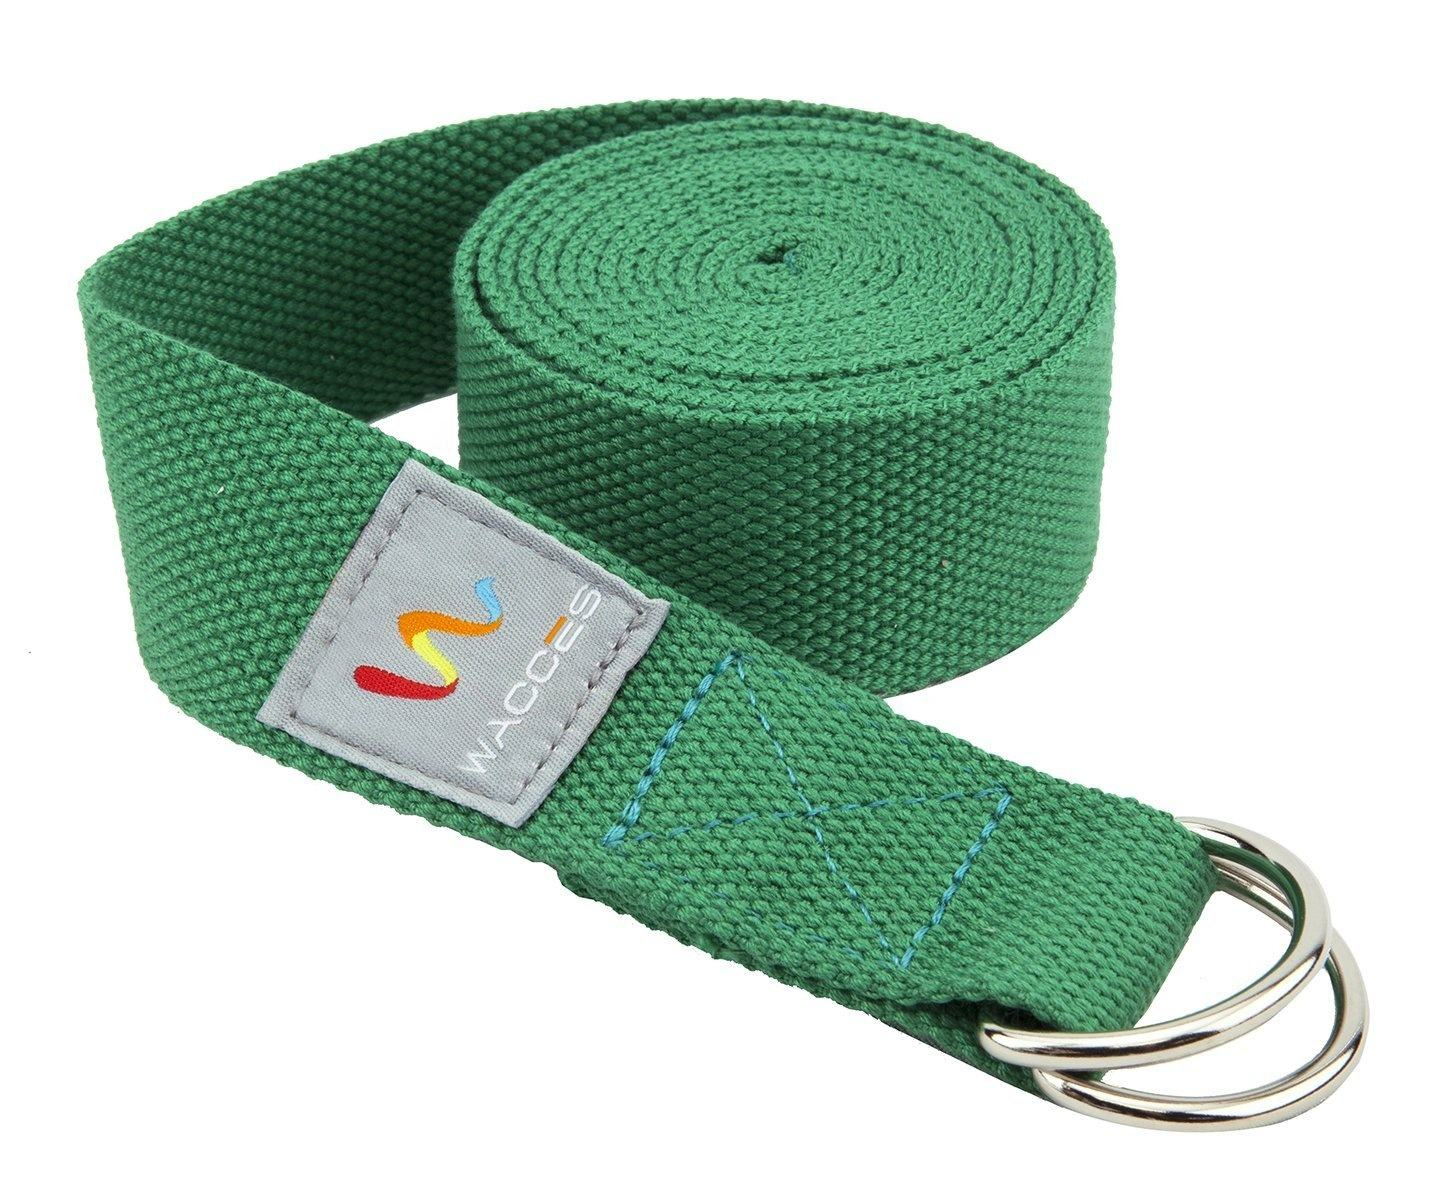 Hot selling gym accessories custom logo home fitness yoga stretch strap with metal rings